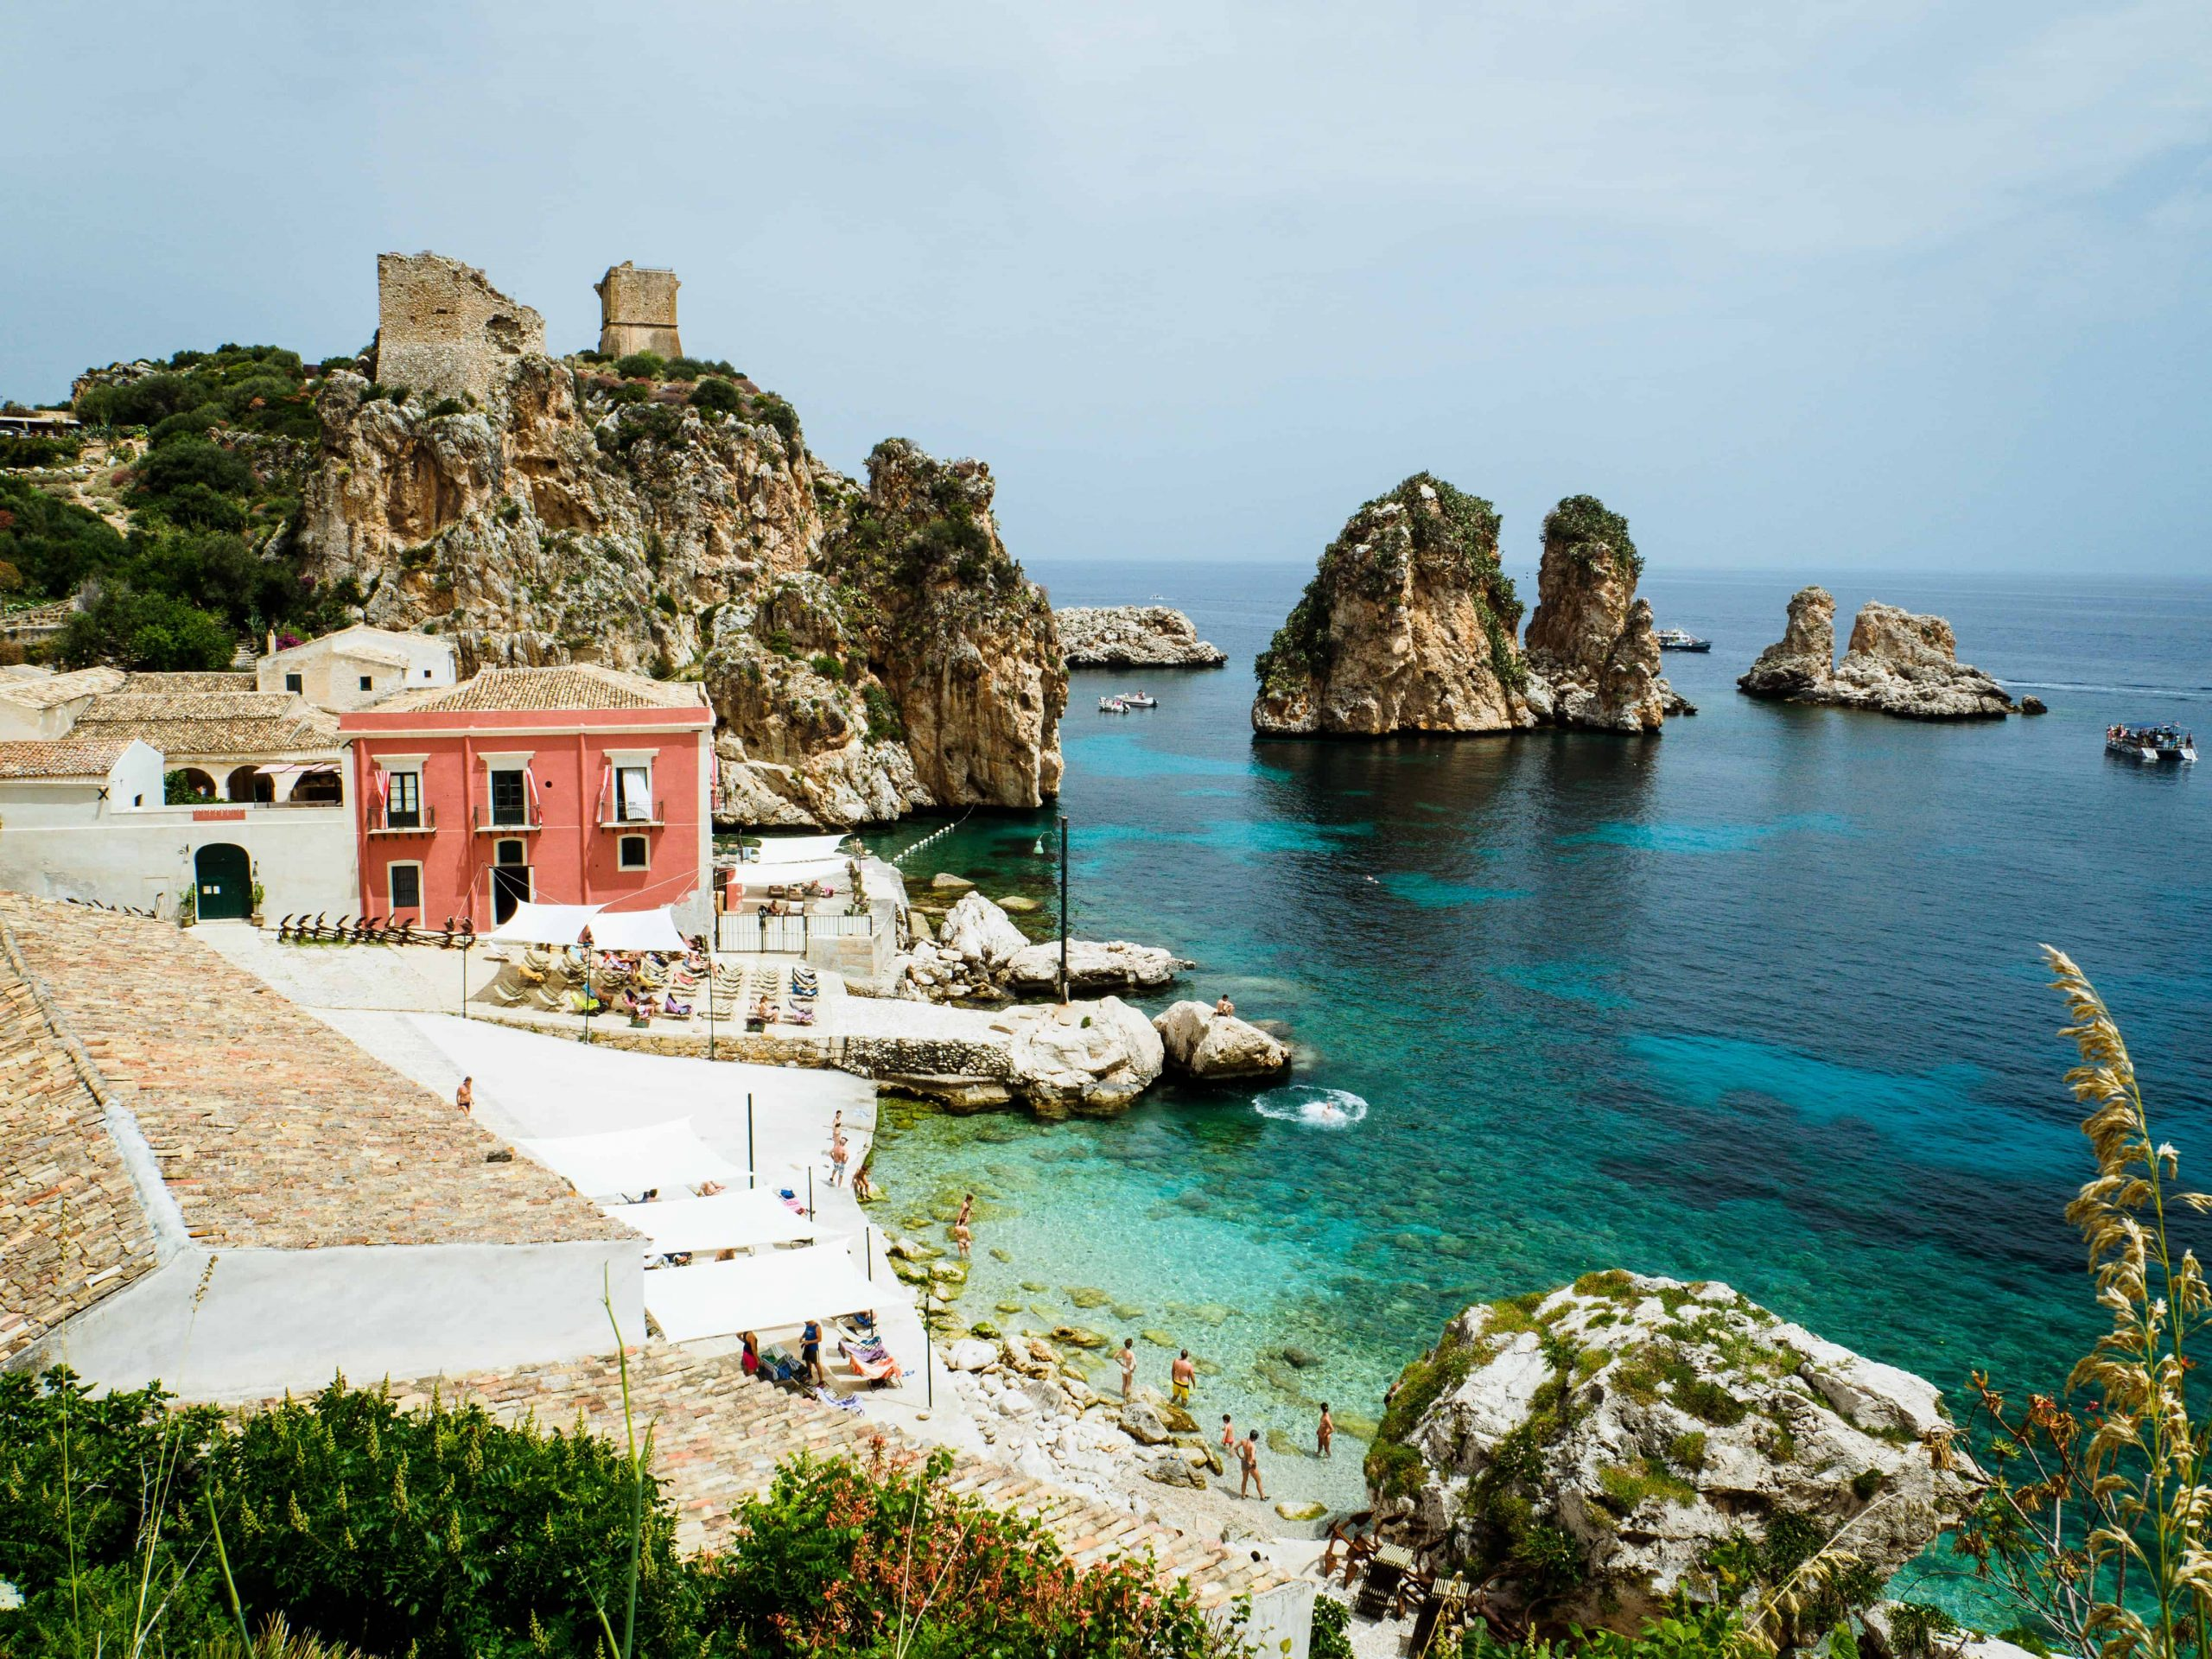 Sicily Will Pay For Part Of Your Trip If You Visit After The Coronavirus Crisis